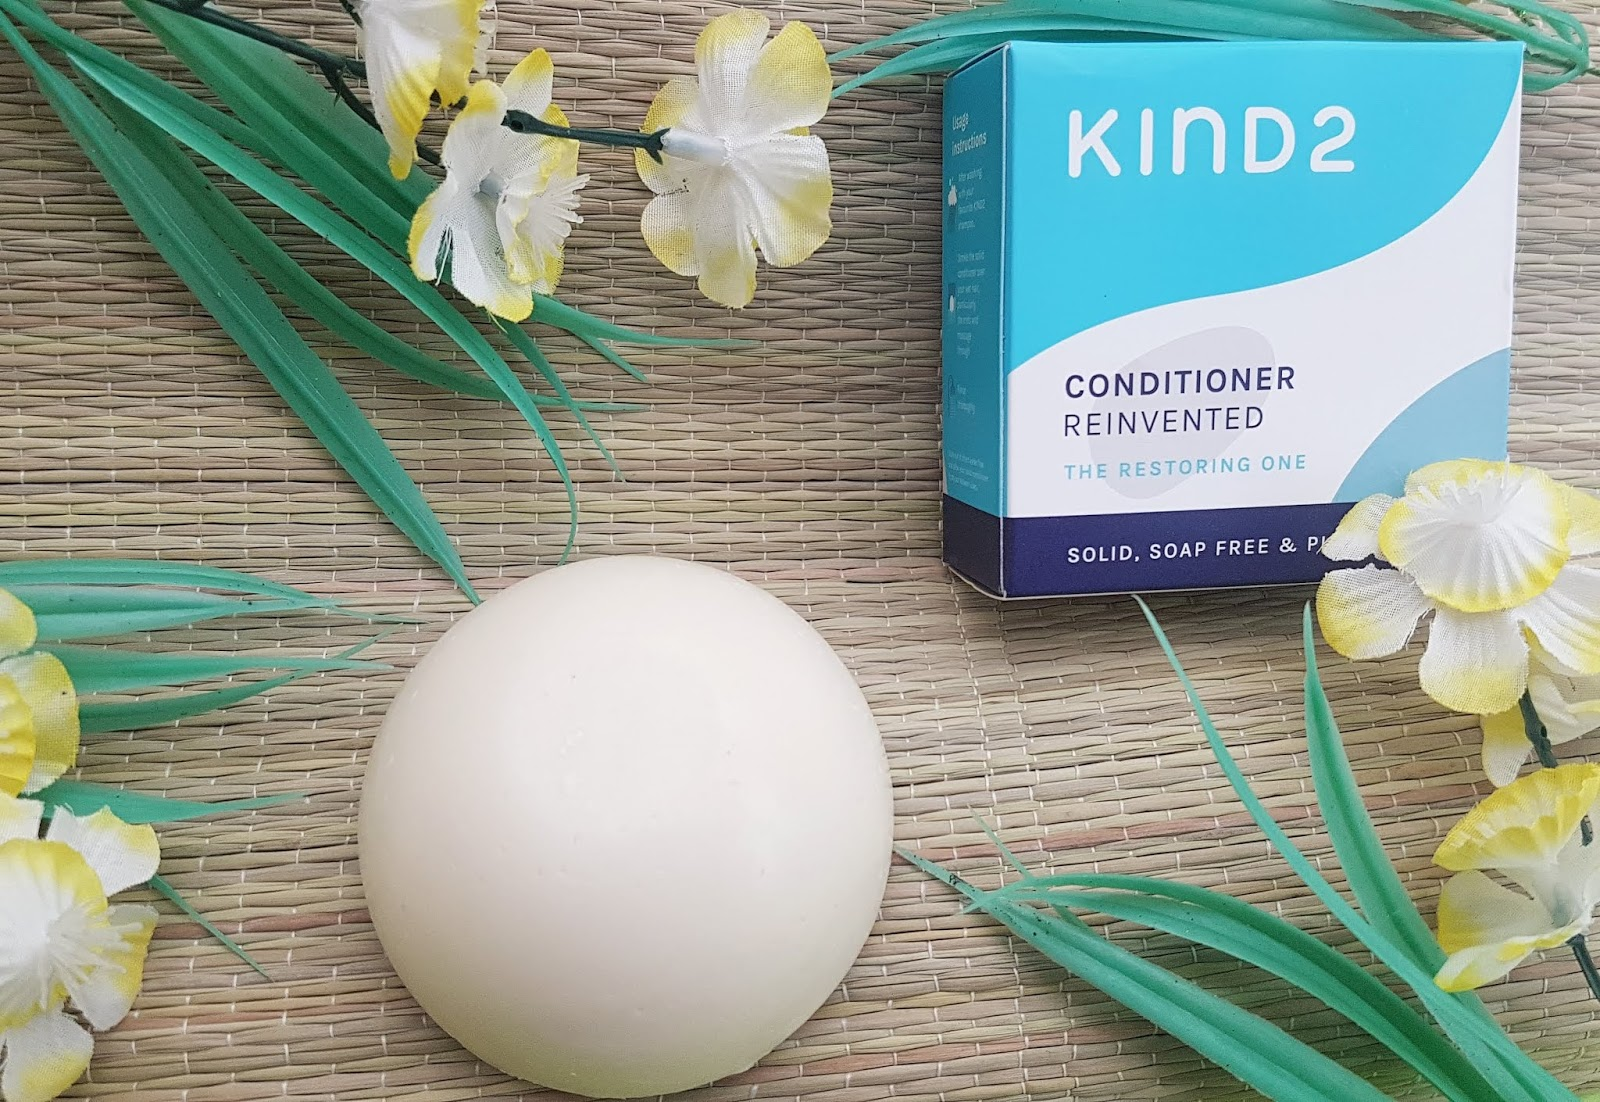 The Natural Beauty Box - Kind2 Conditioner Bar Review